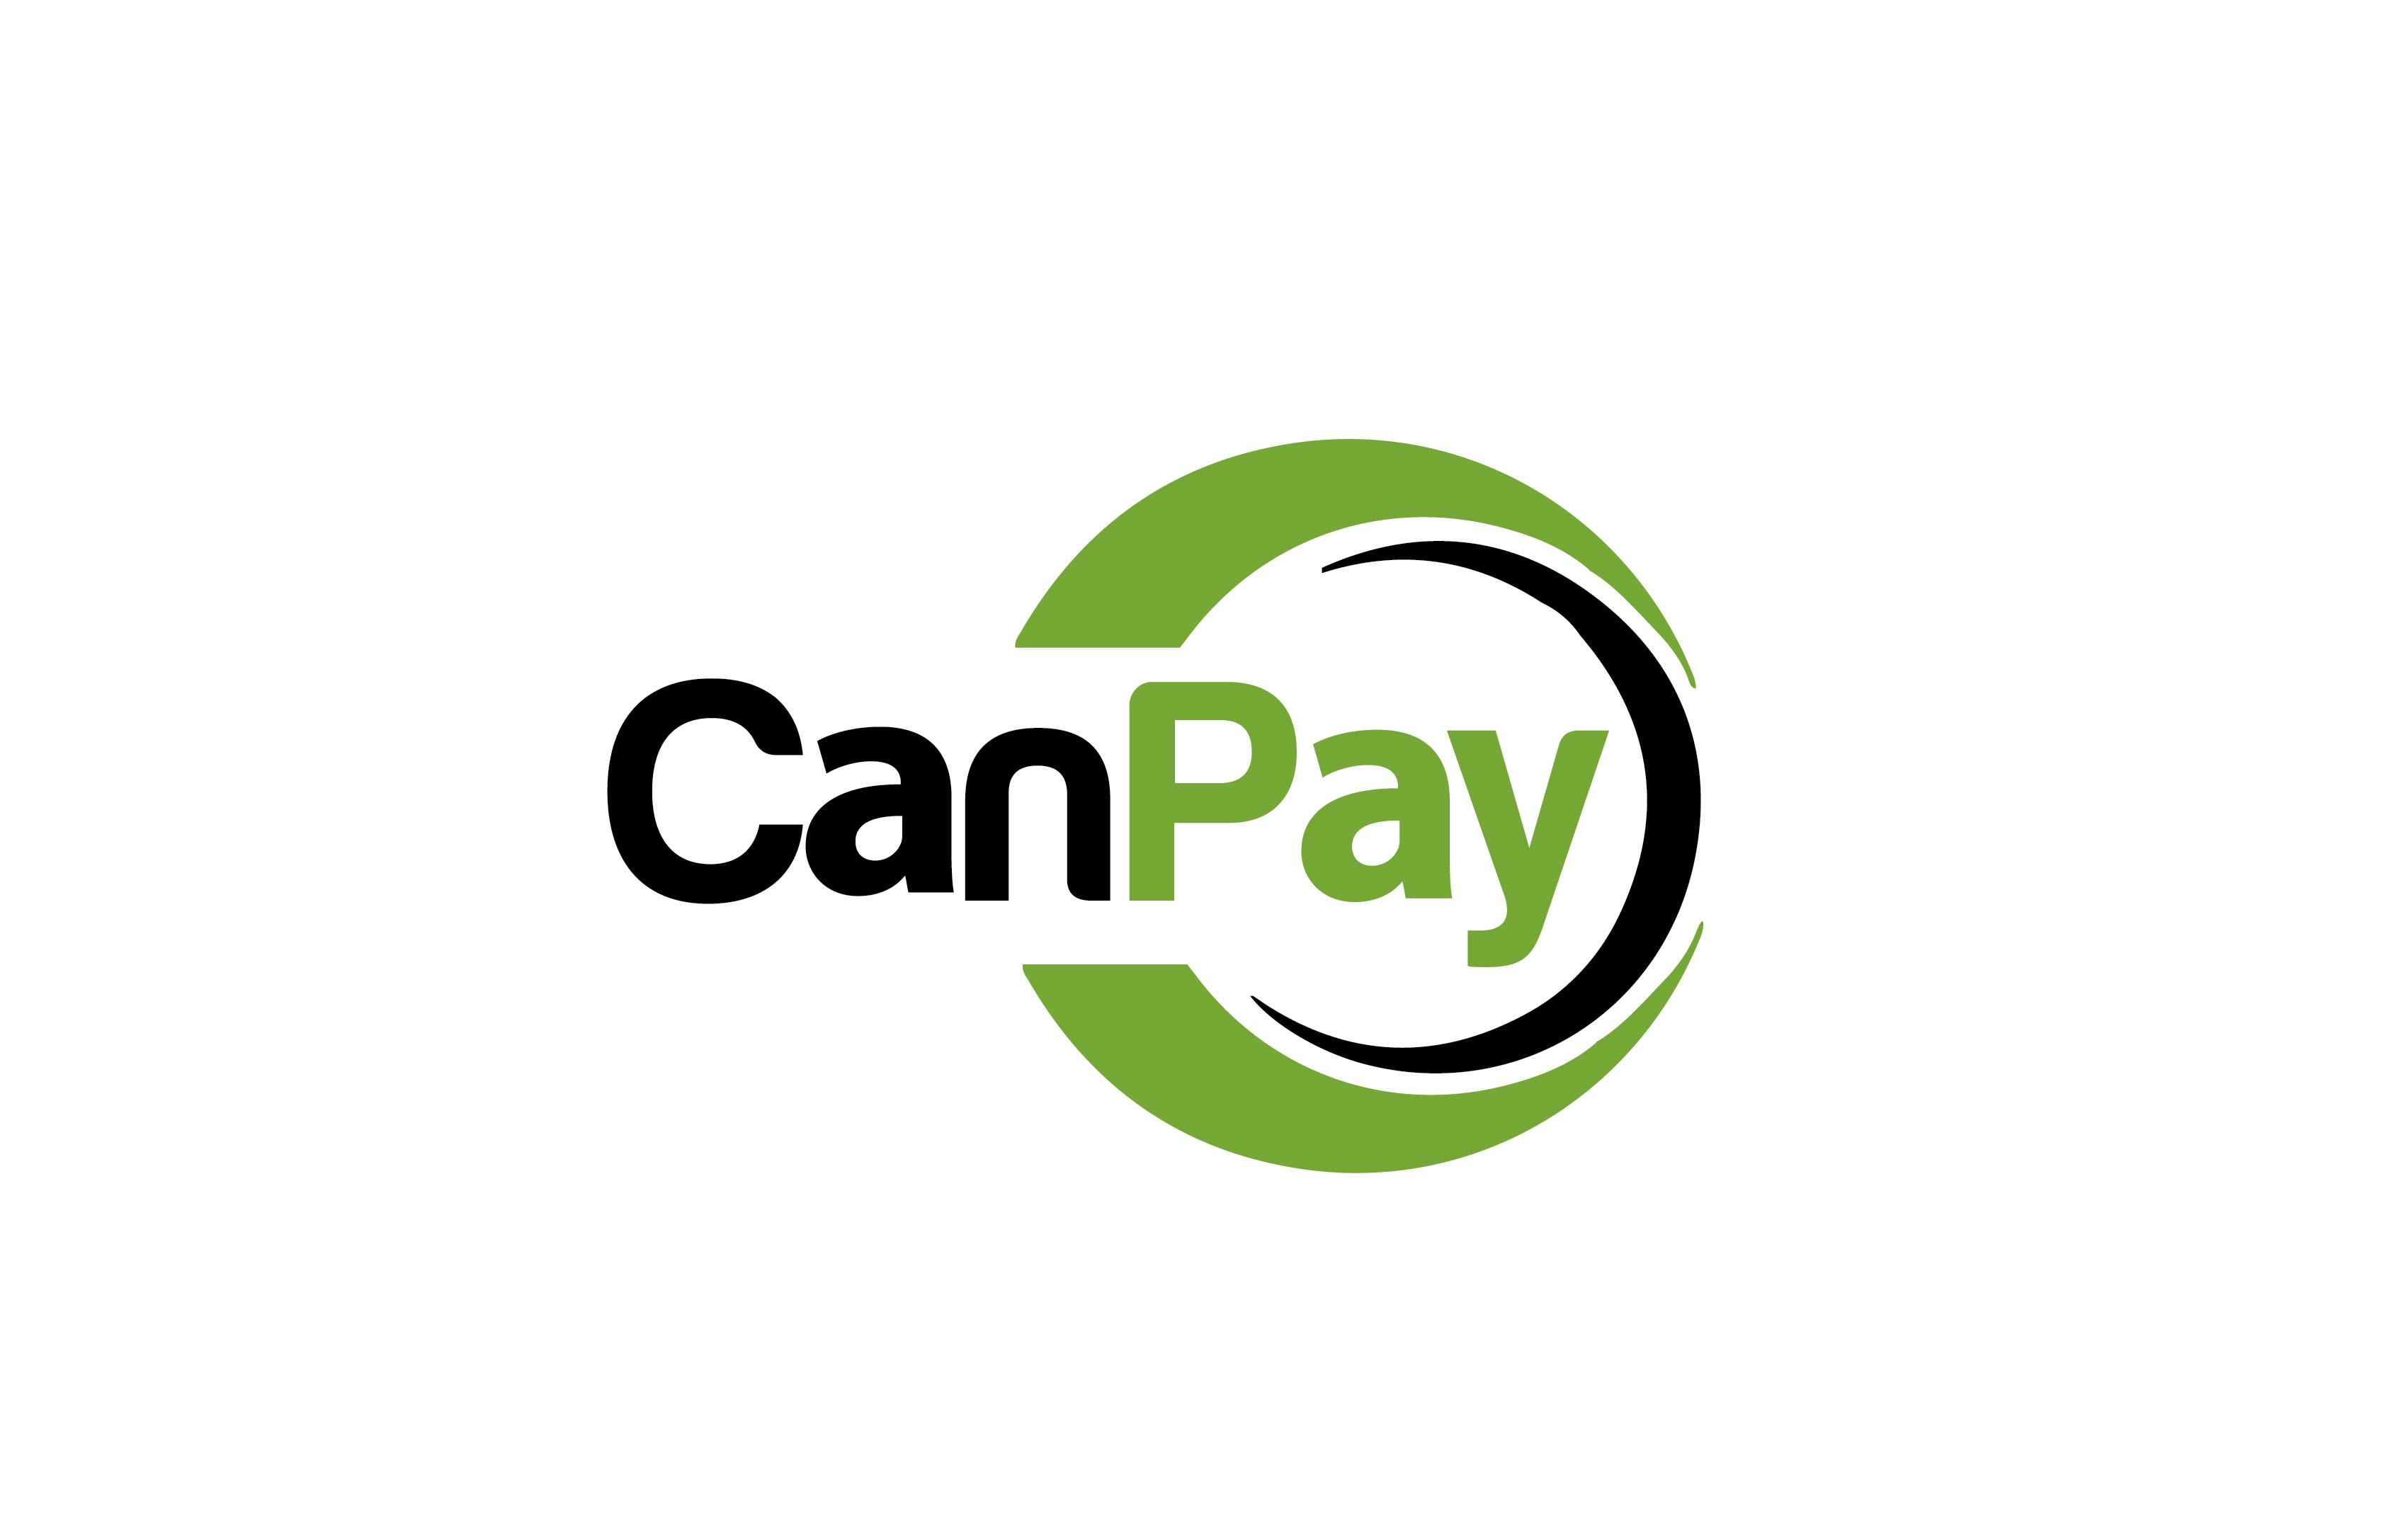 CanPay Debit Payment Processing